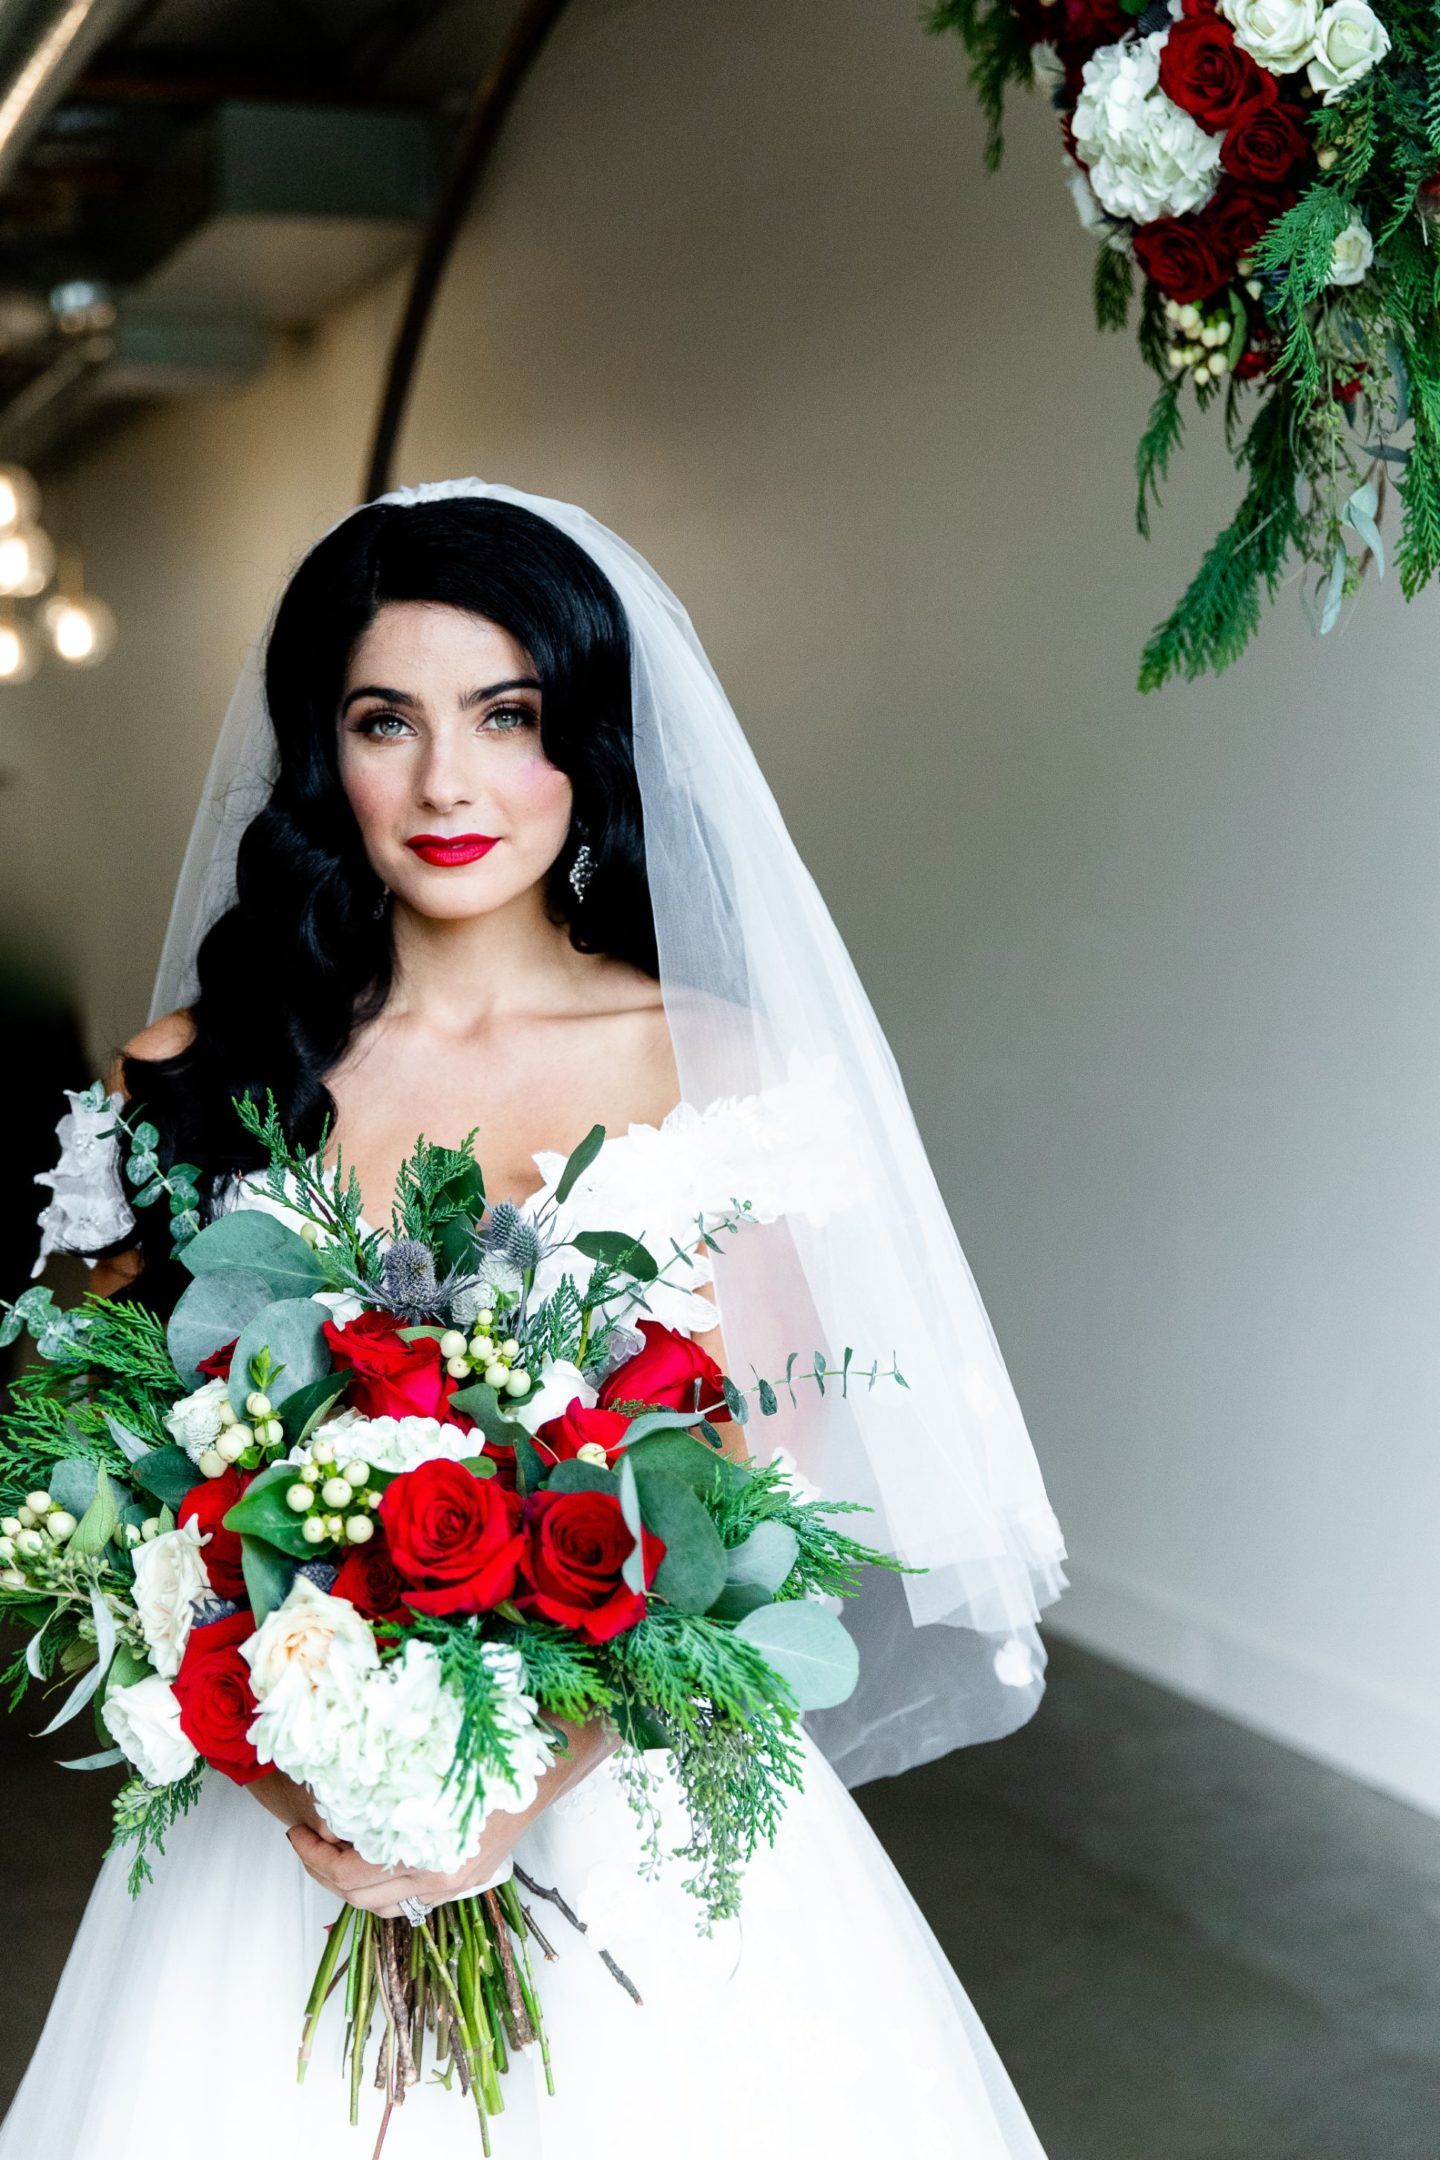 Retro Christmas Wedding With Red and Green Styling at Pop Up Shot Club, USA